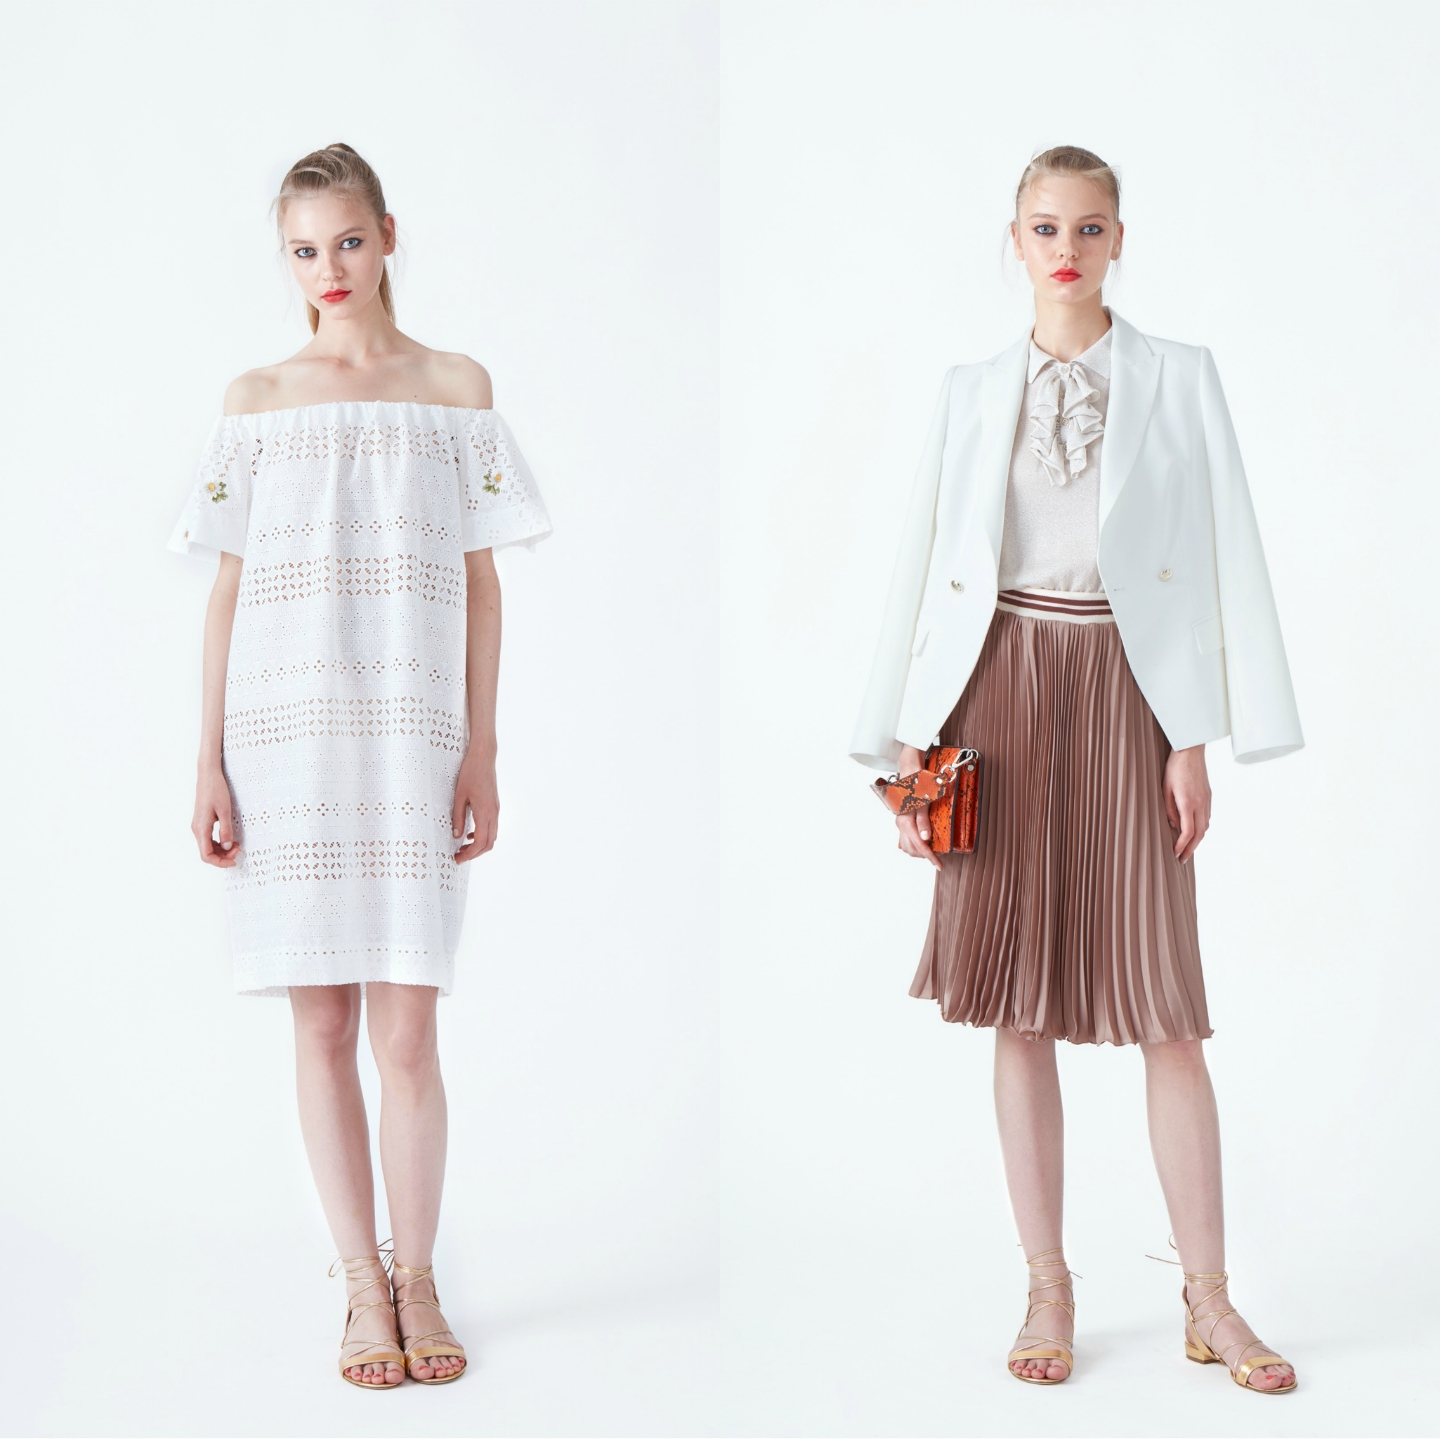 Eniwhere Fashion - Resort Collection - Blugirl